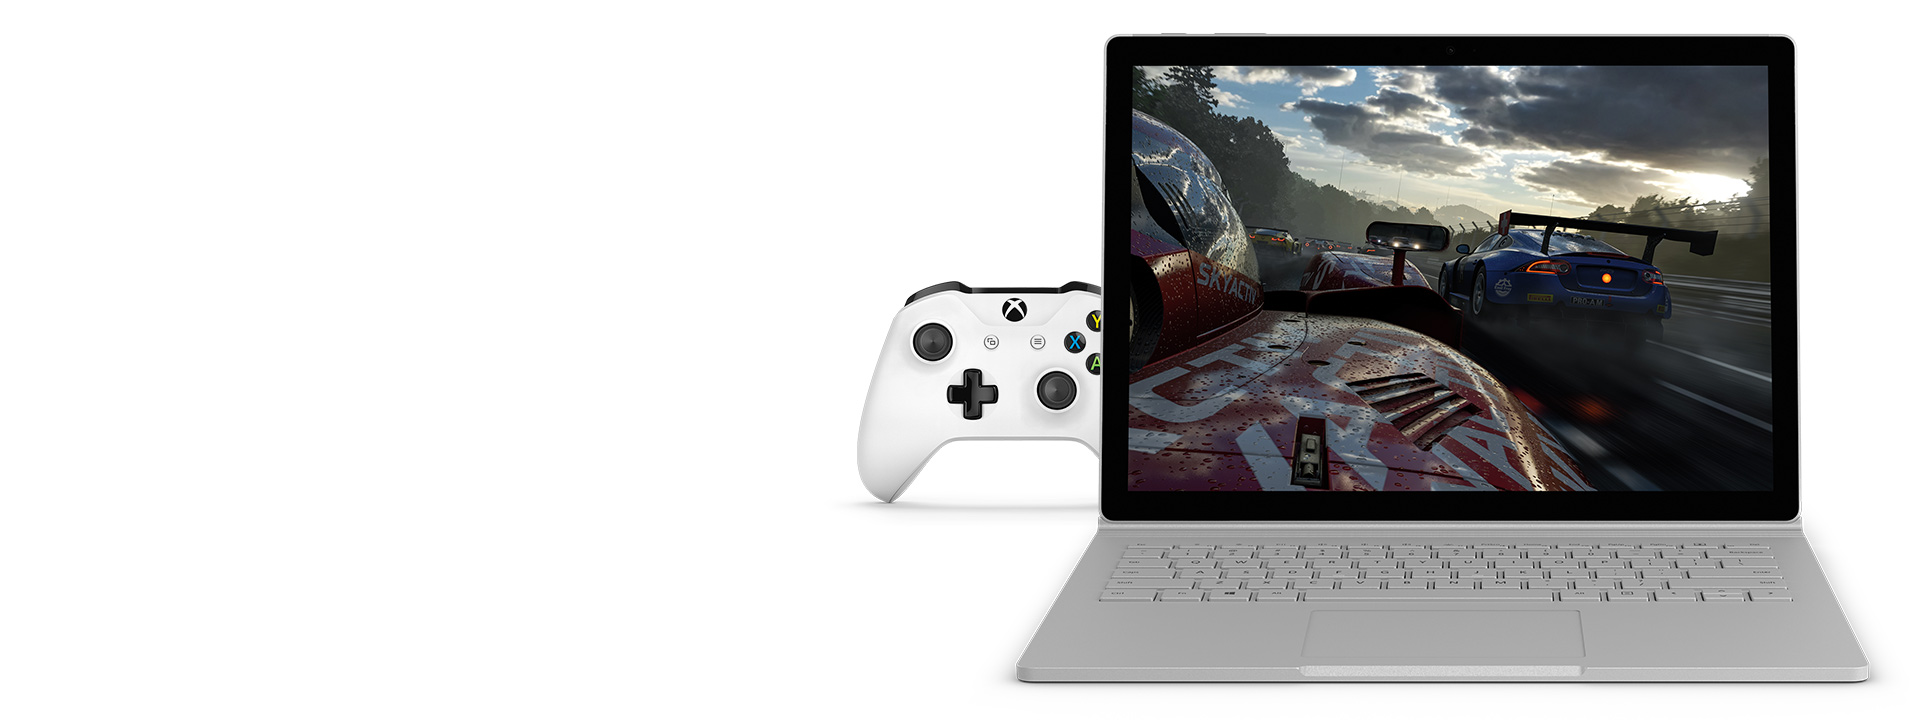 Juegos en Surface Book 2 con el Xbox Wireless Controller